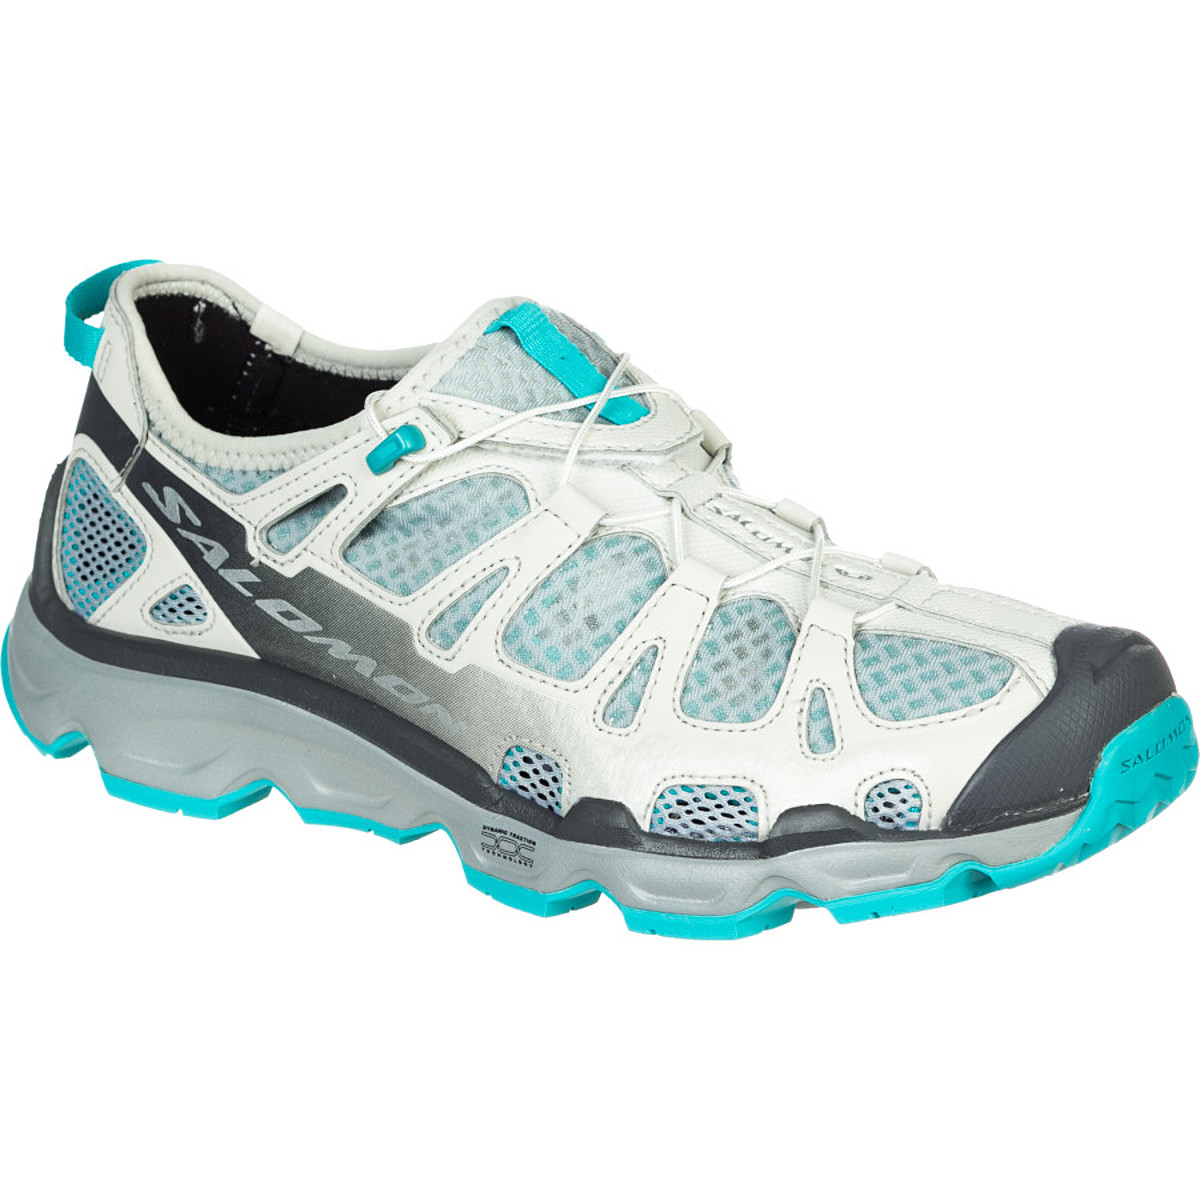 photo: Salomon Women's Gecko water shoe